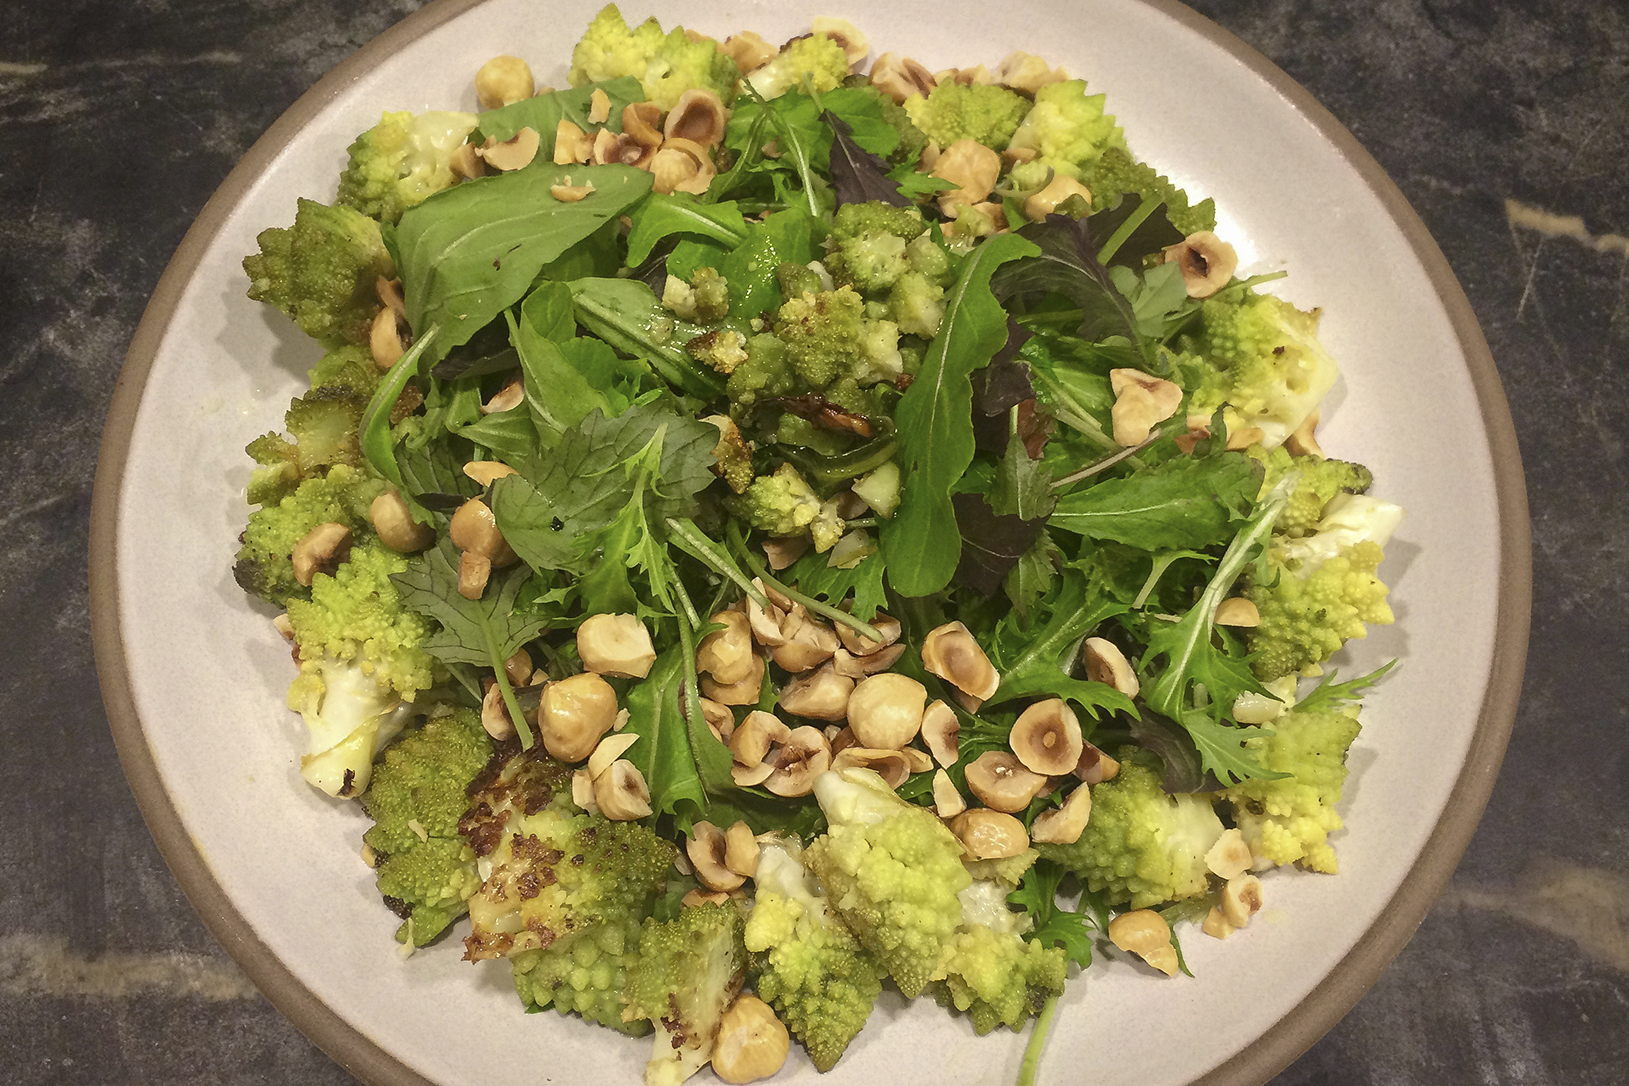 Kathy's roasted cauliflower salad with winter greens, toasted hazelnuts and tahini vinaigrette. (Kathy Gunst for Here & Now)